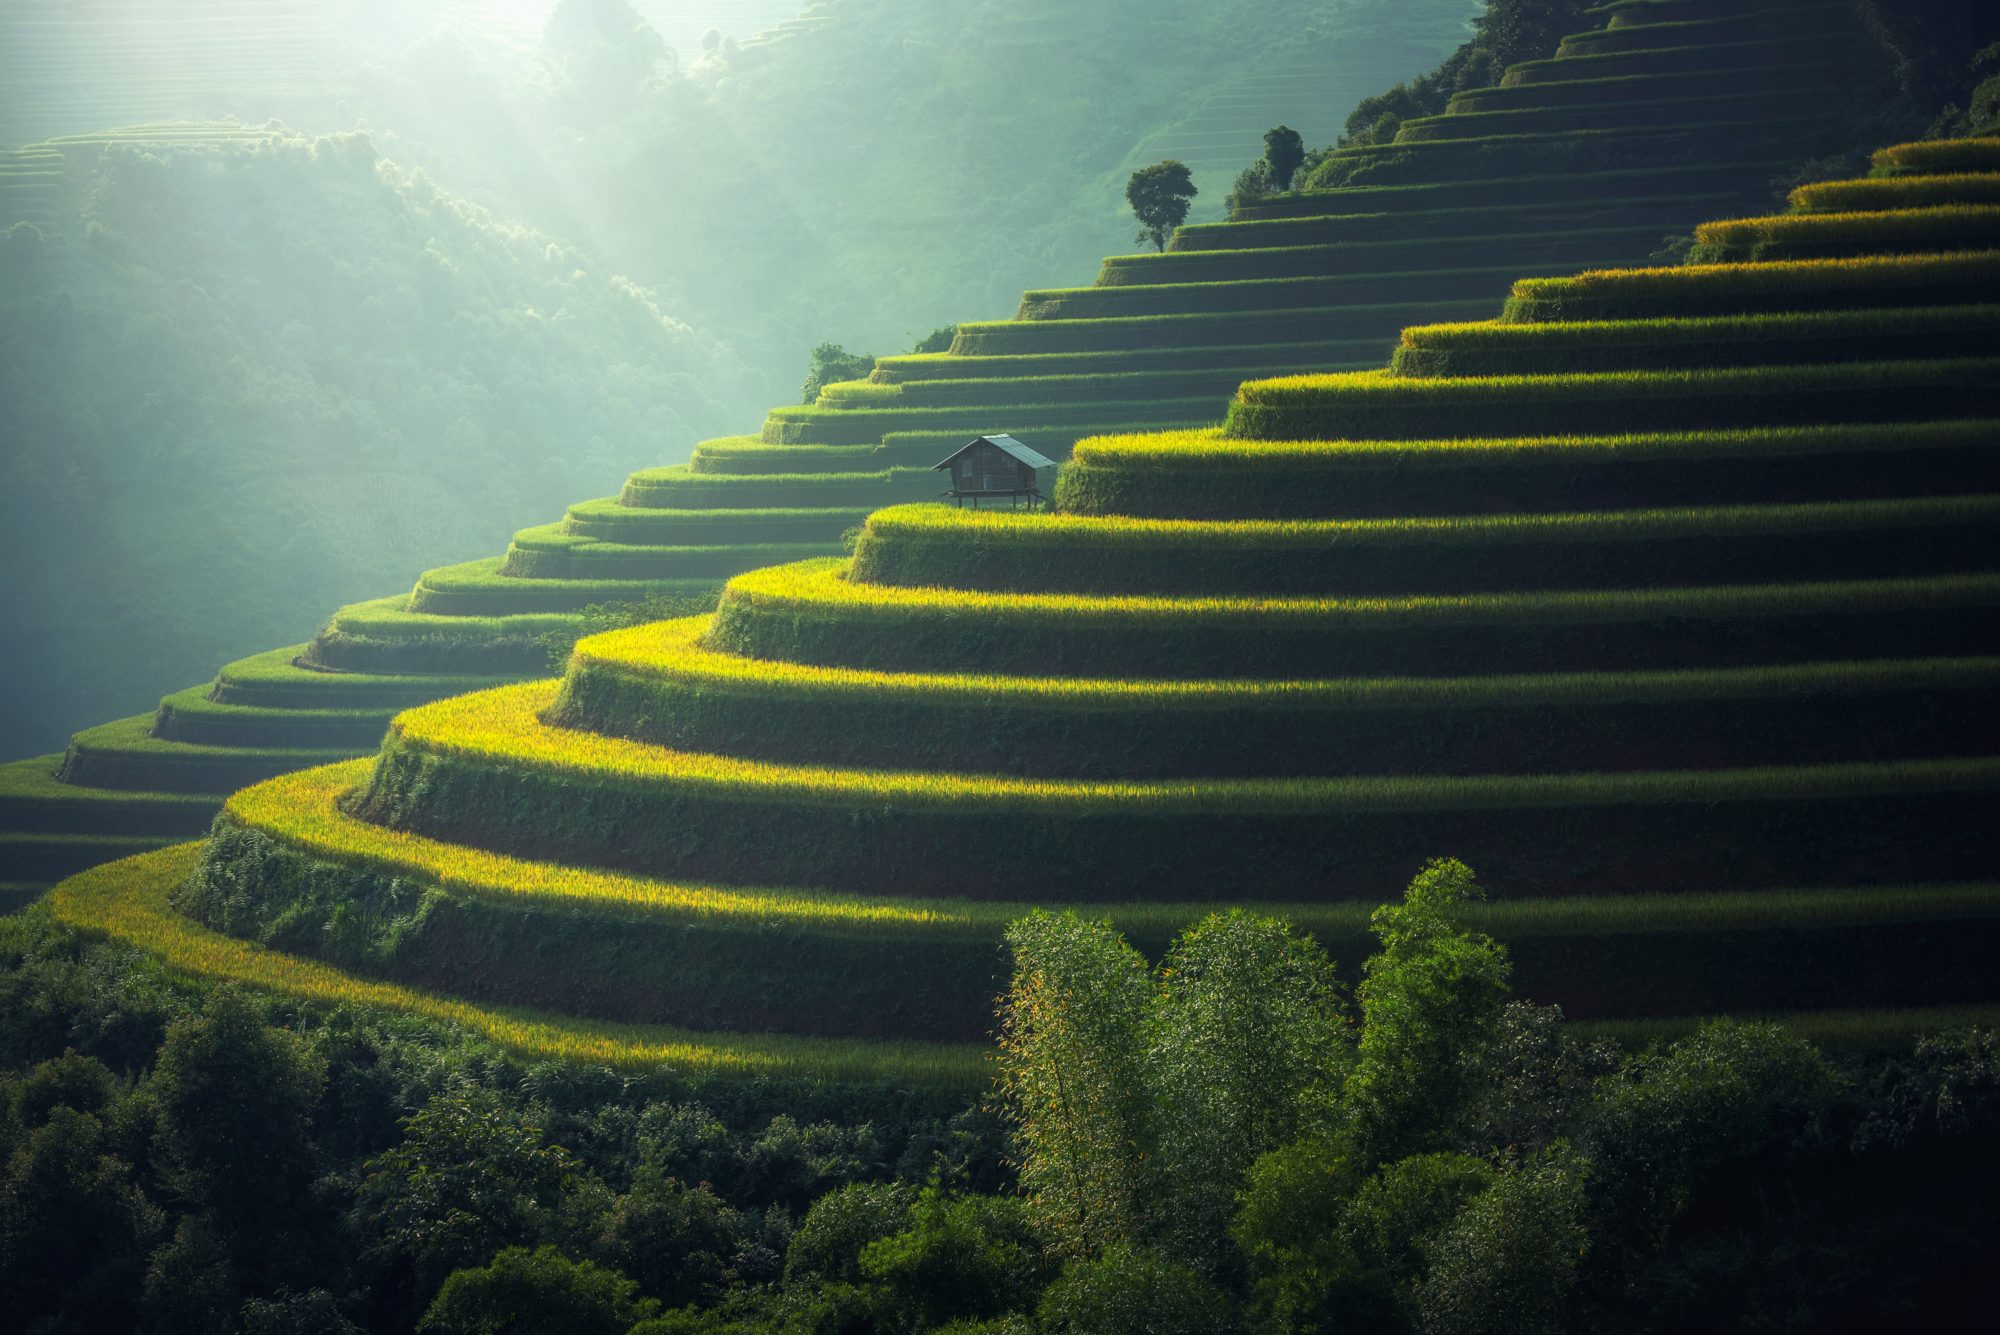 rice paddy scenic landscape photography